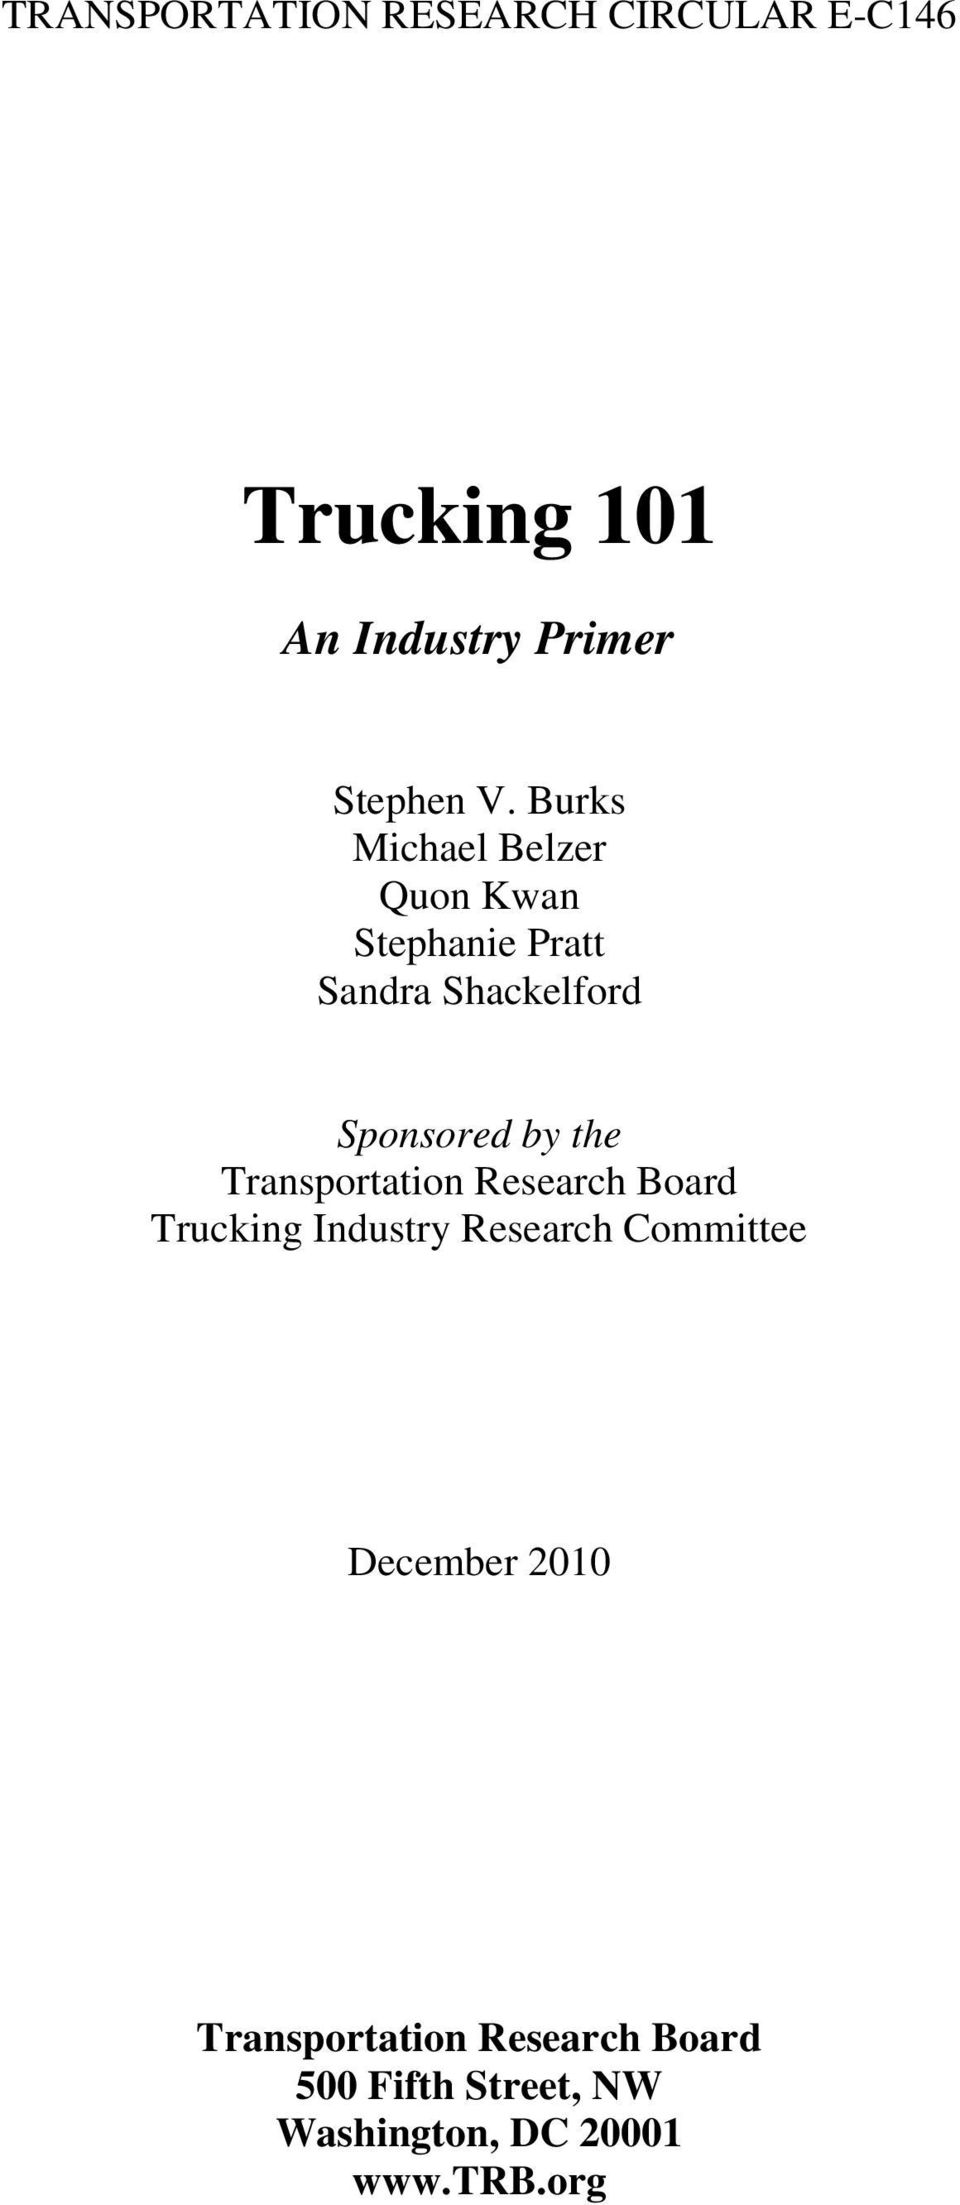 Transportation Research Board Trucking Industry Research Committee December 2010